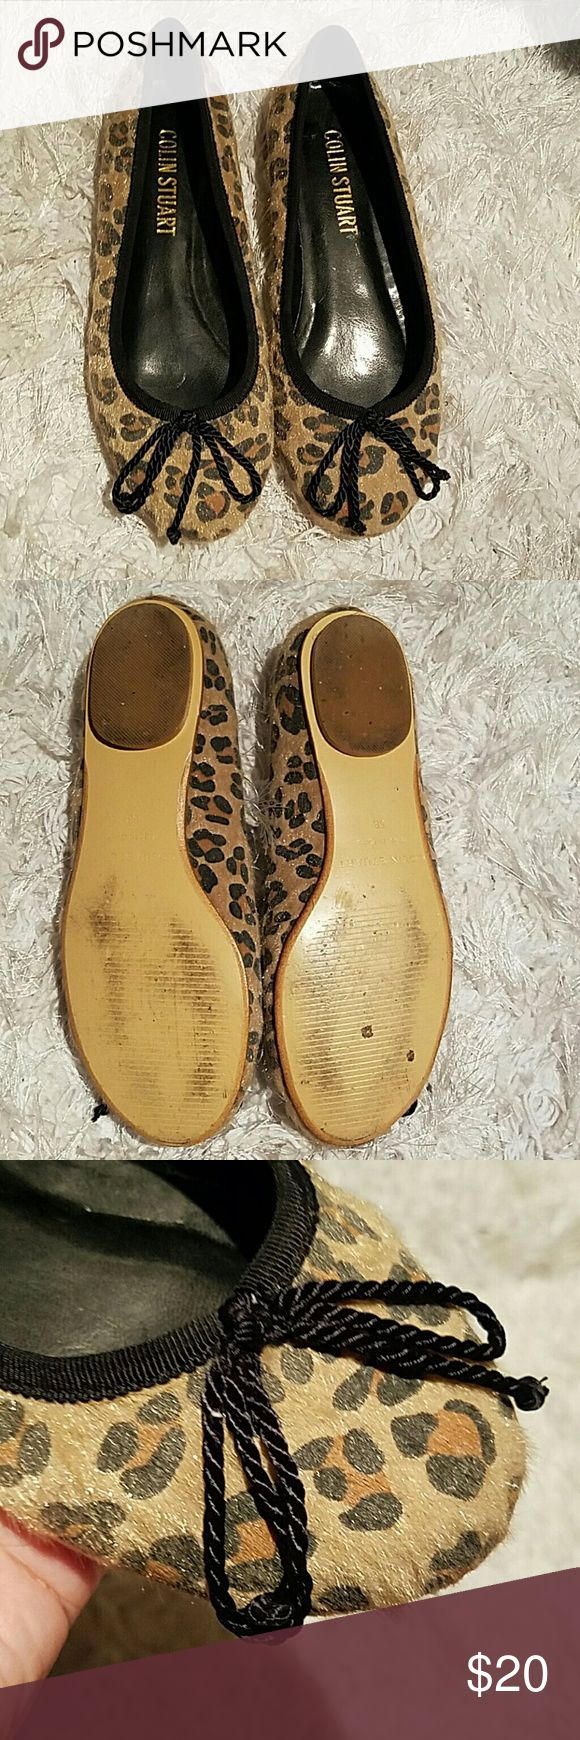 Colin Stuart flats Leopard flats in great condition. Colin Stuart Shoes Flats & Loafers